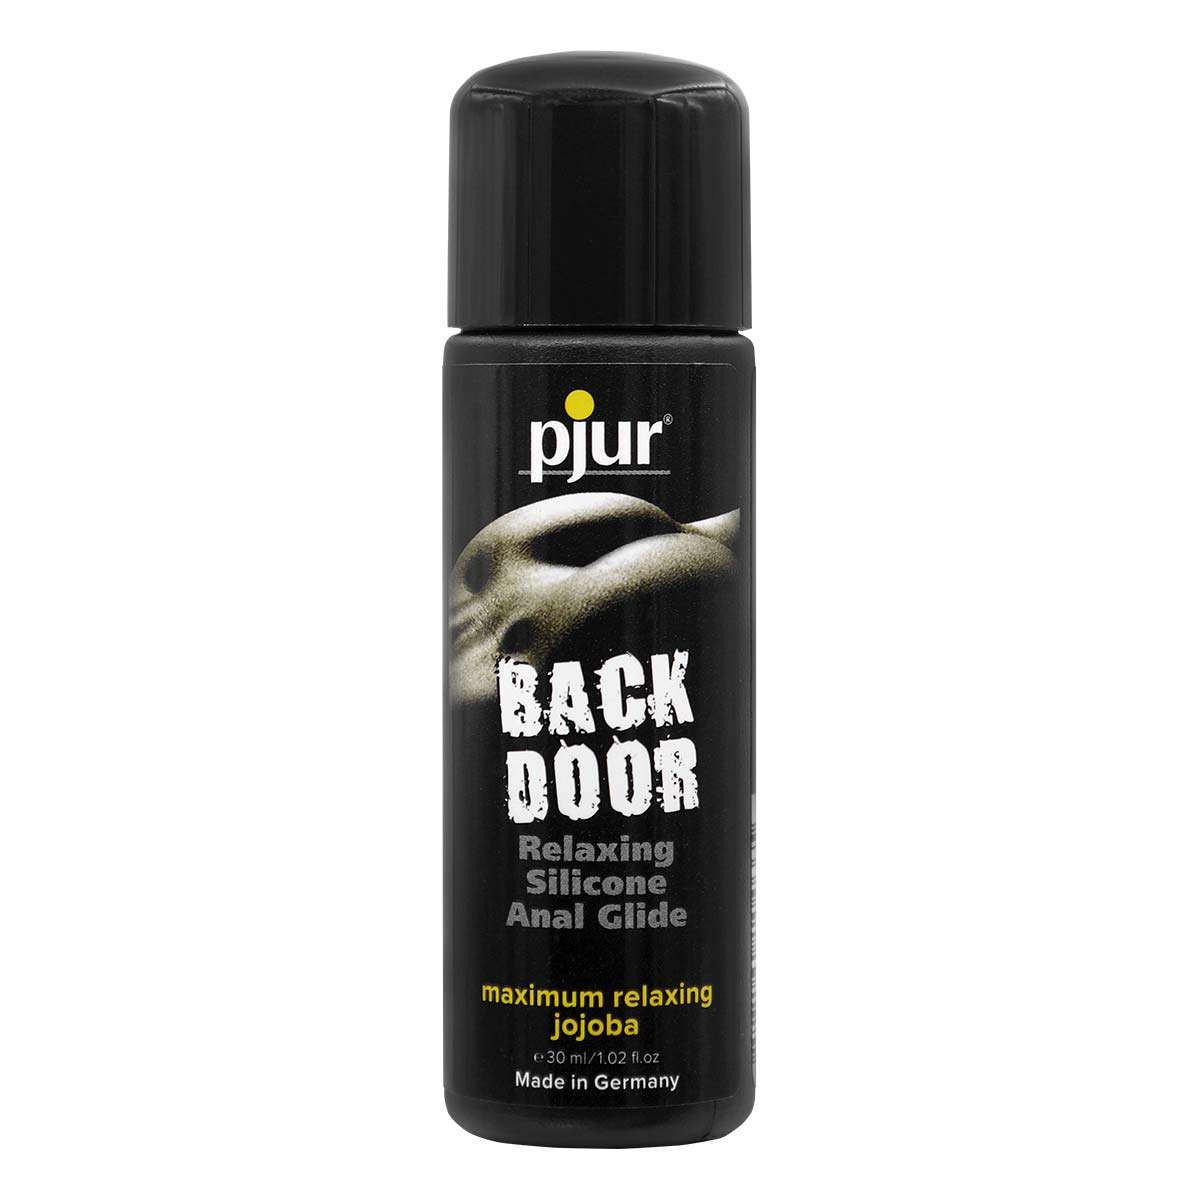 pjur back door relaxing anal glide 30ml Silicone-based Lubricant